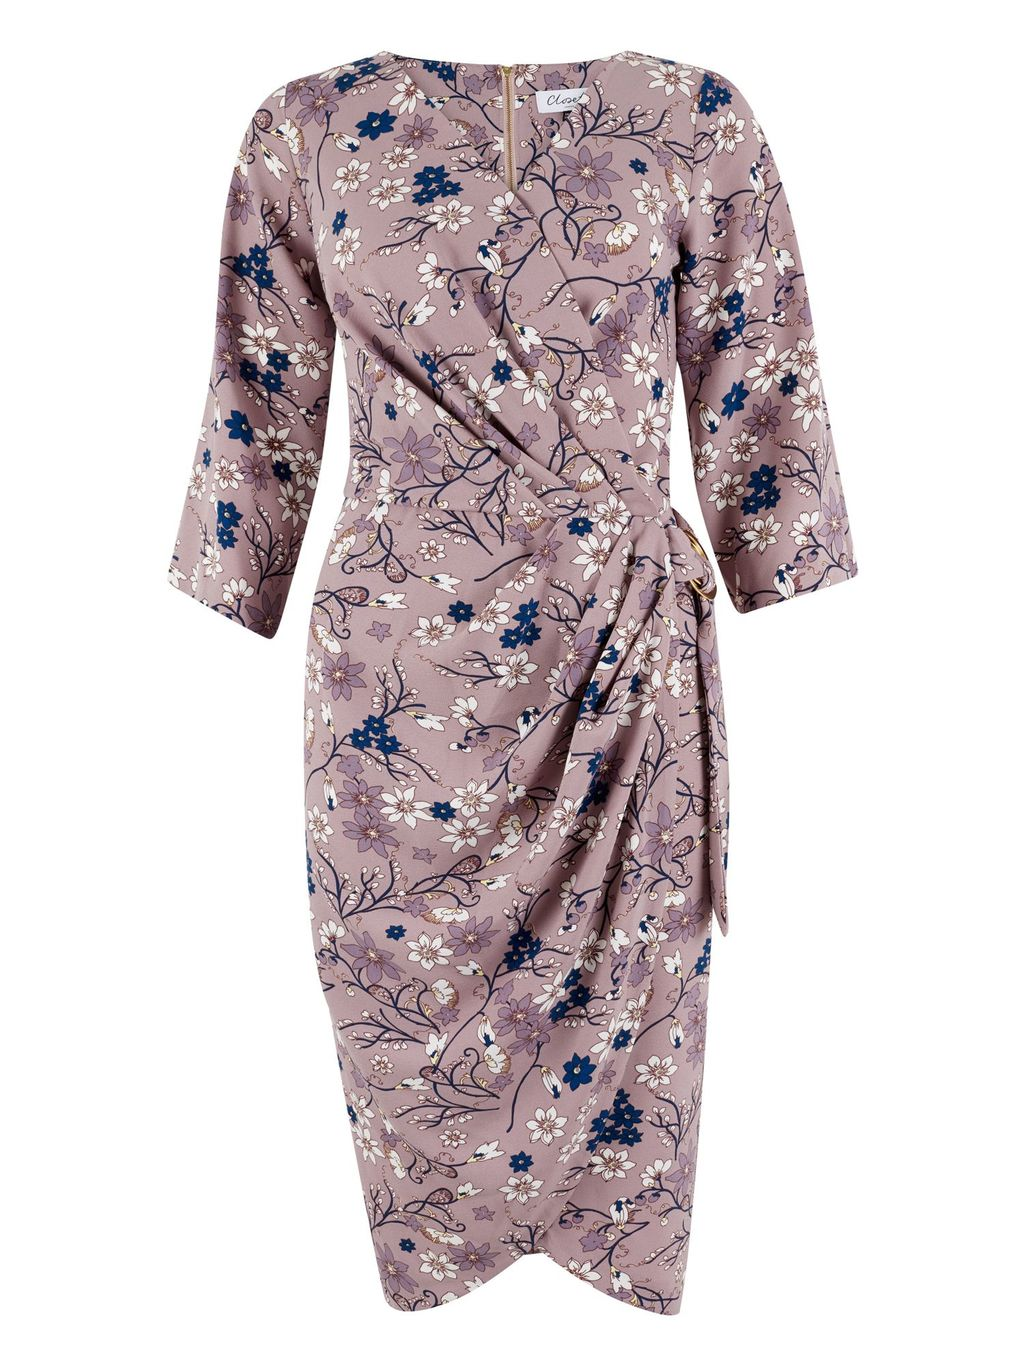 Tulip Print Drape Belted Dress, Lilac - style: faux wrap/wrap; neckline: v-neck; fit: fitted at waist; waist detail: belted waist/tie at waist/drawstring; length: just above the knee; fibres: polyester/polyamide - stretch; occasions: occasion; sleeve length: half sleeve; sleeve style: standard; pattern type: fabric; pattern: patterned/print; texture group: jersey - stretchy/drapey; predominant colour: dusky pink; season: s/s 2016; wardrobe: event